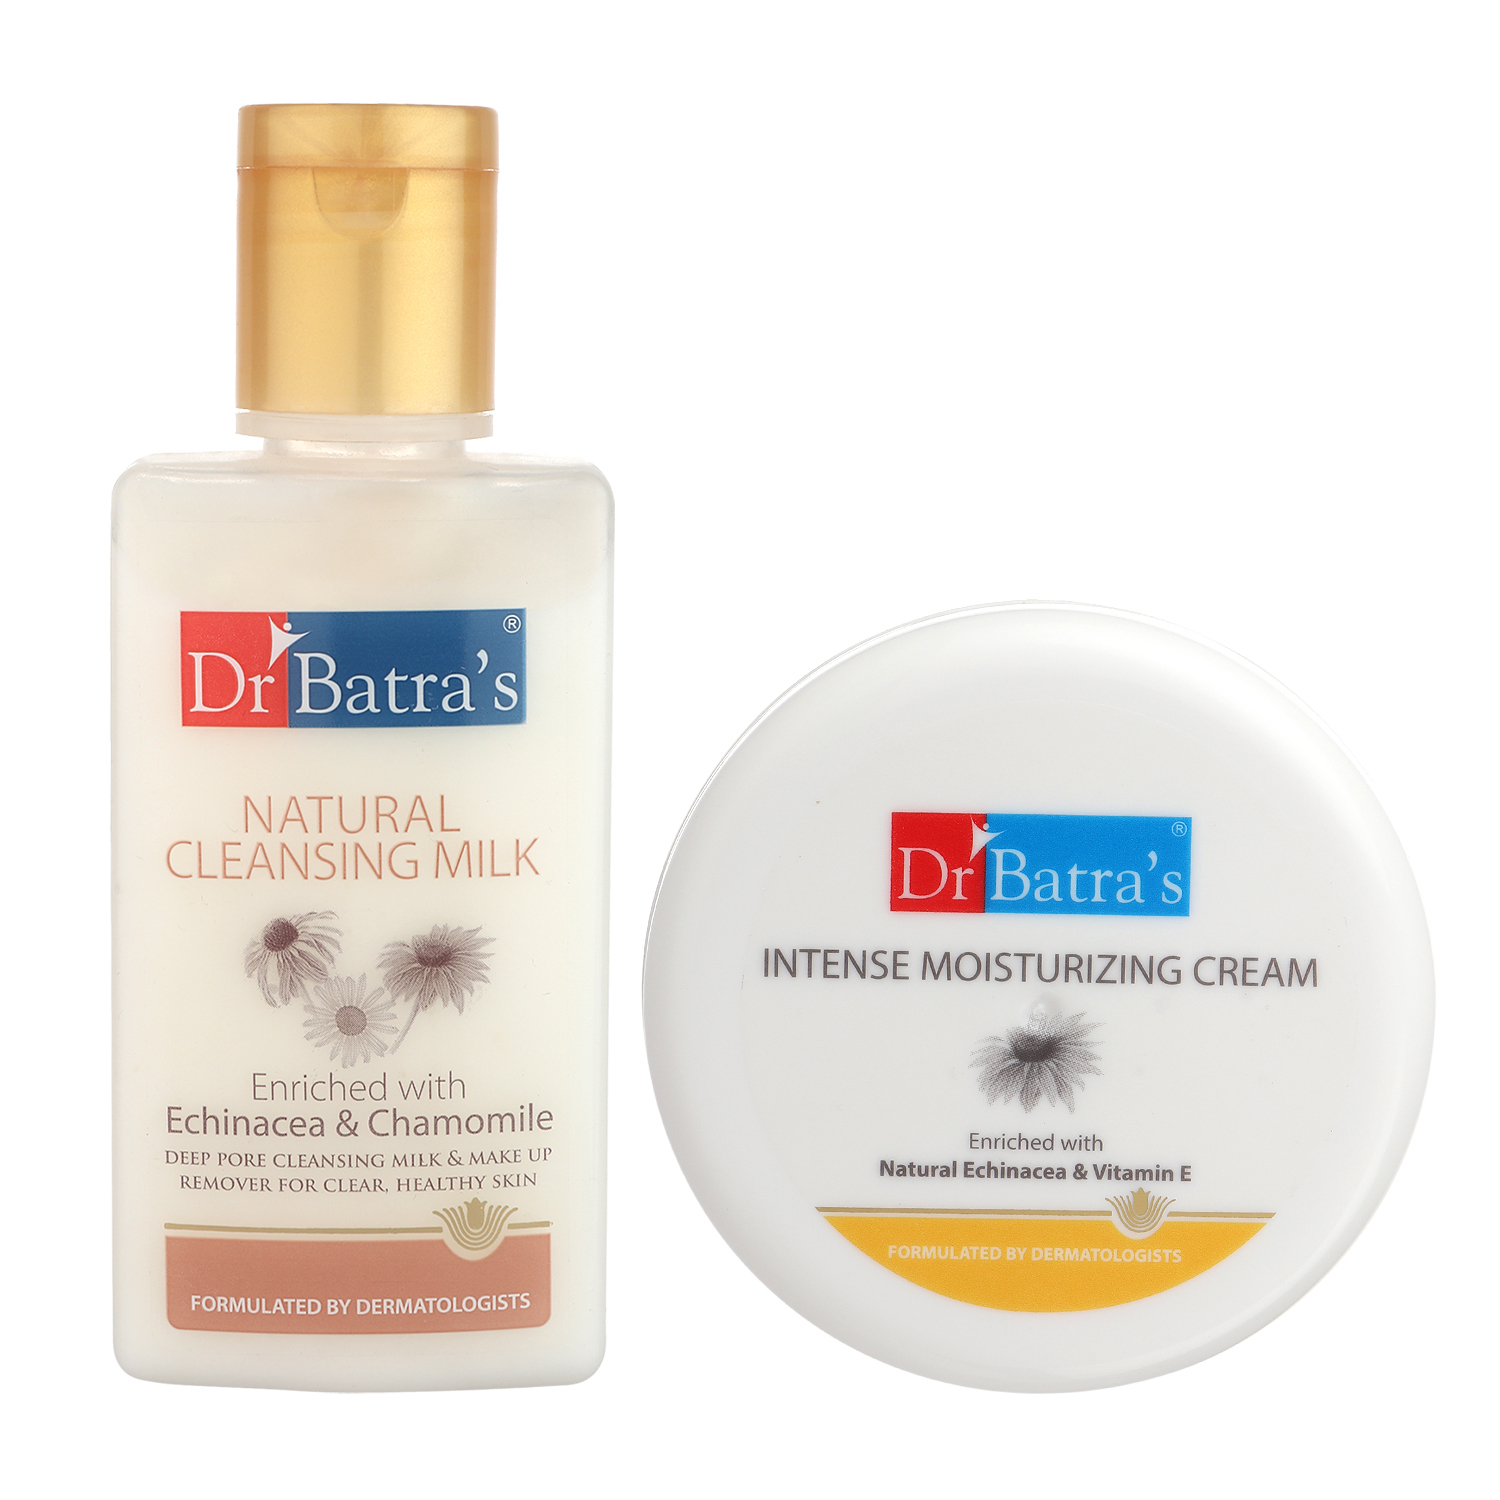 Dr Batra's | Dr Batra's Natural Cleansing Milk - 100 ml and Intense Moisturizing Cream -100 g (Pack of 2 Men and Women)